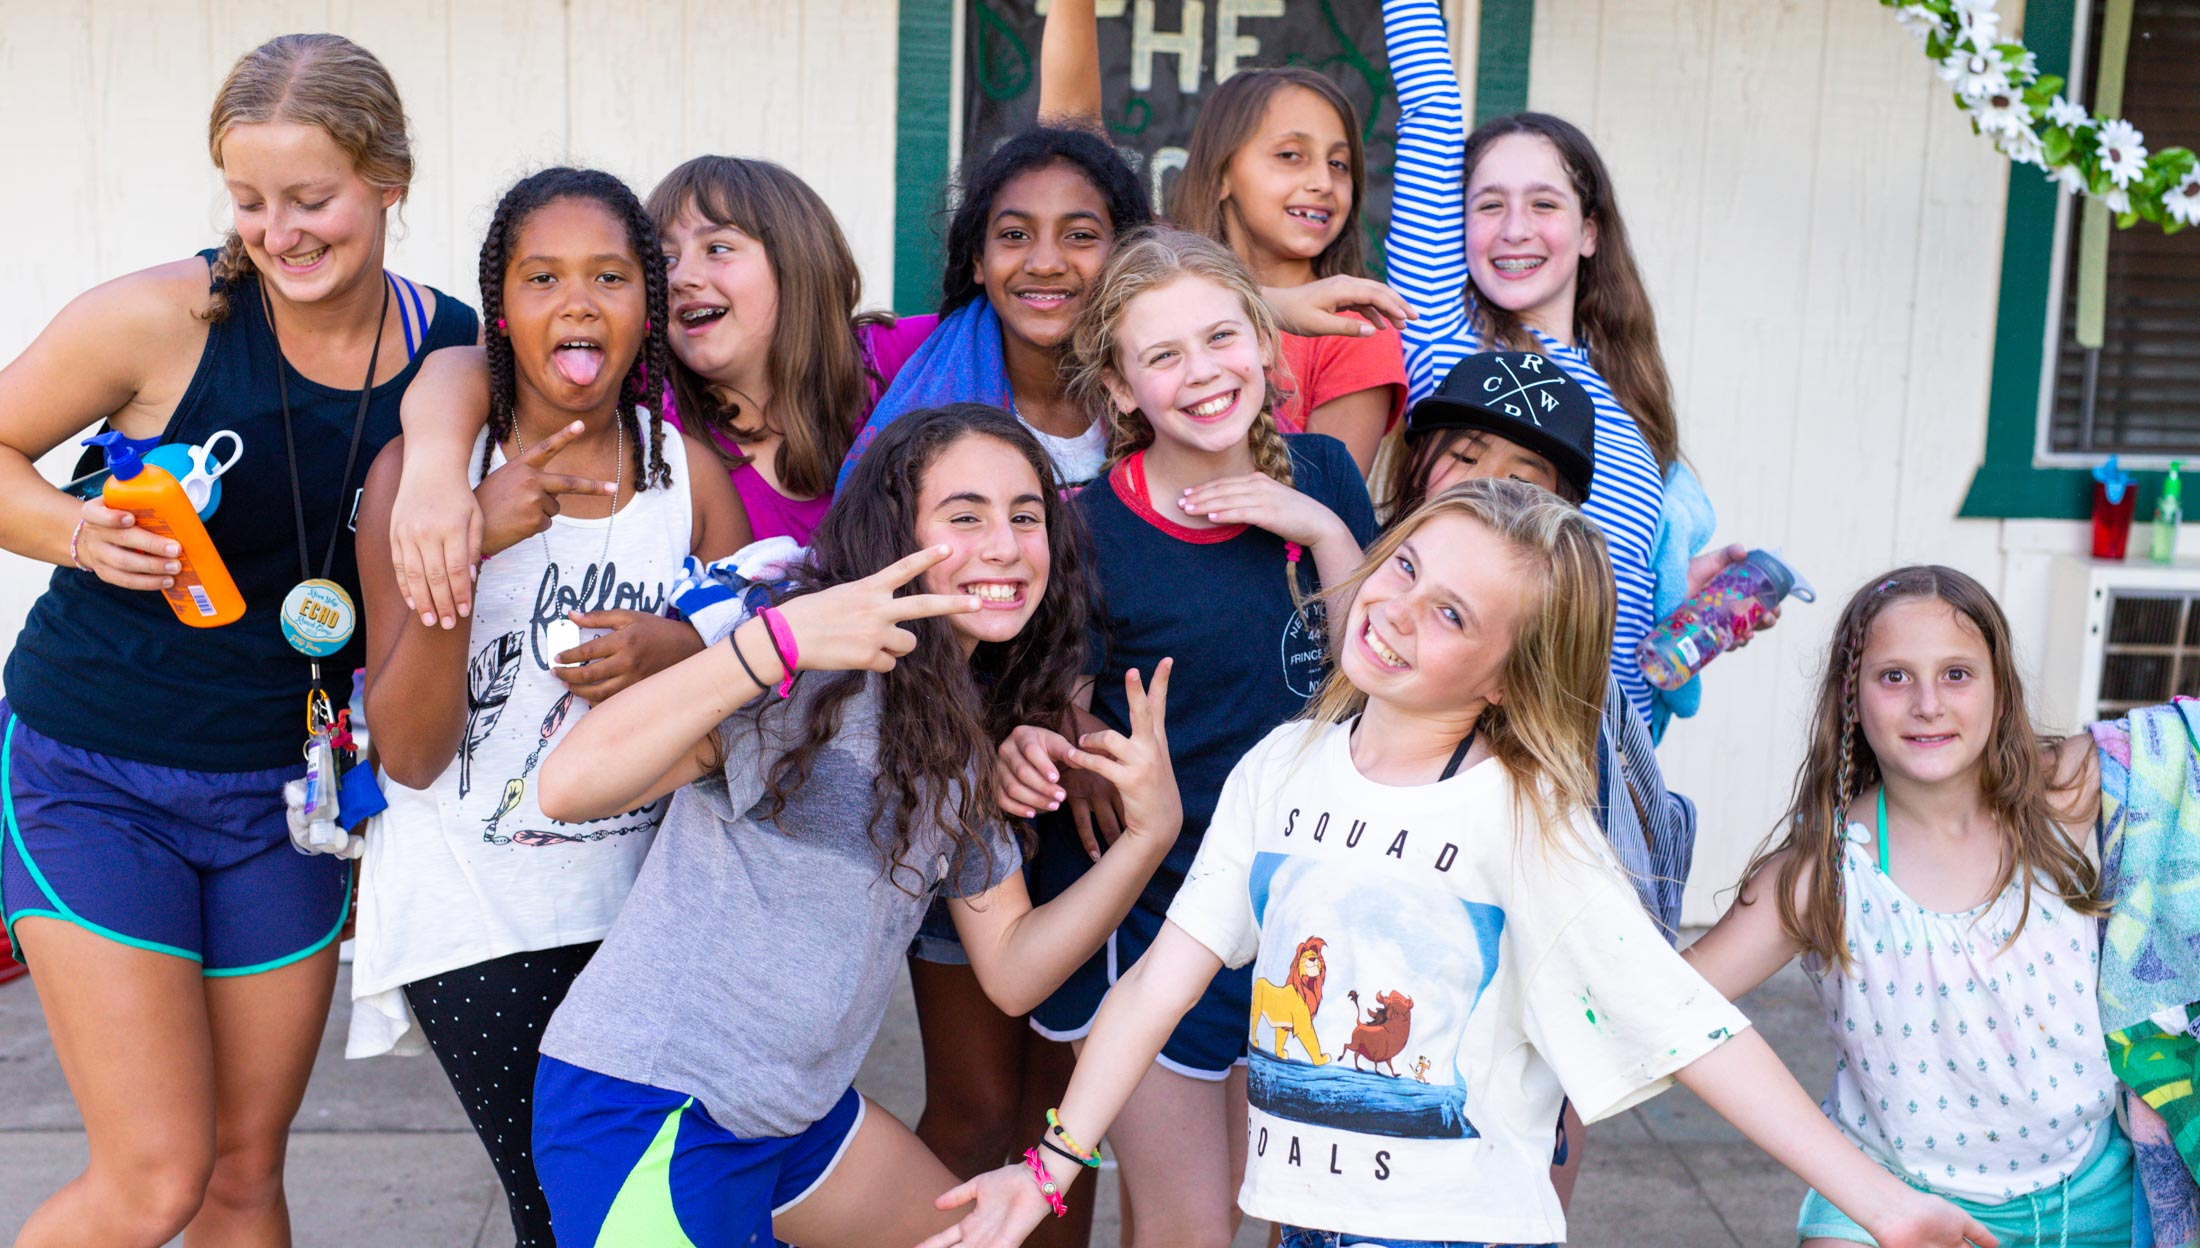 Campers smiling and making silly poses for the camera.